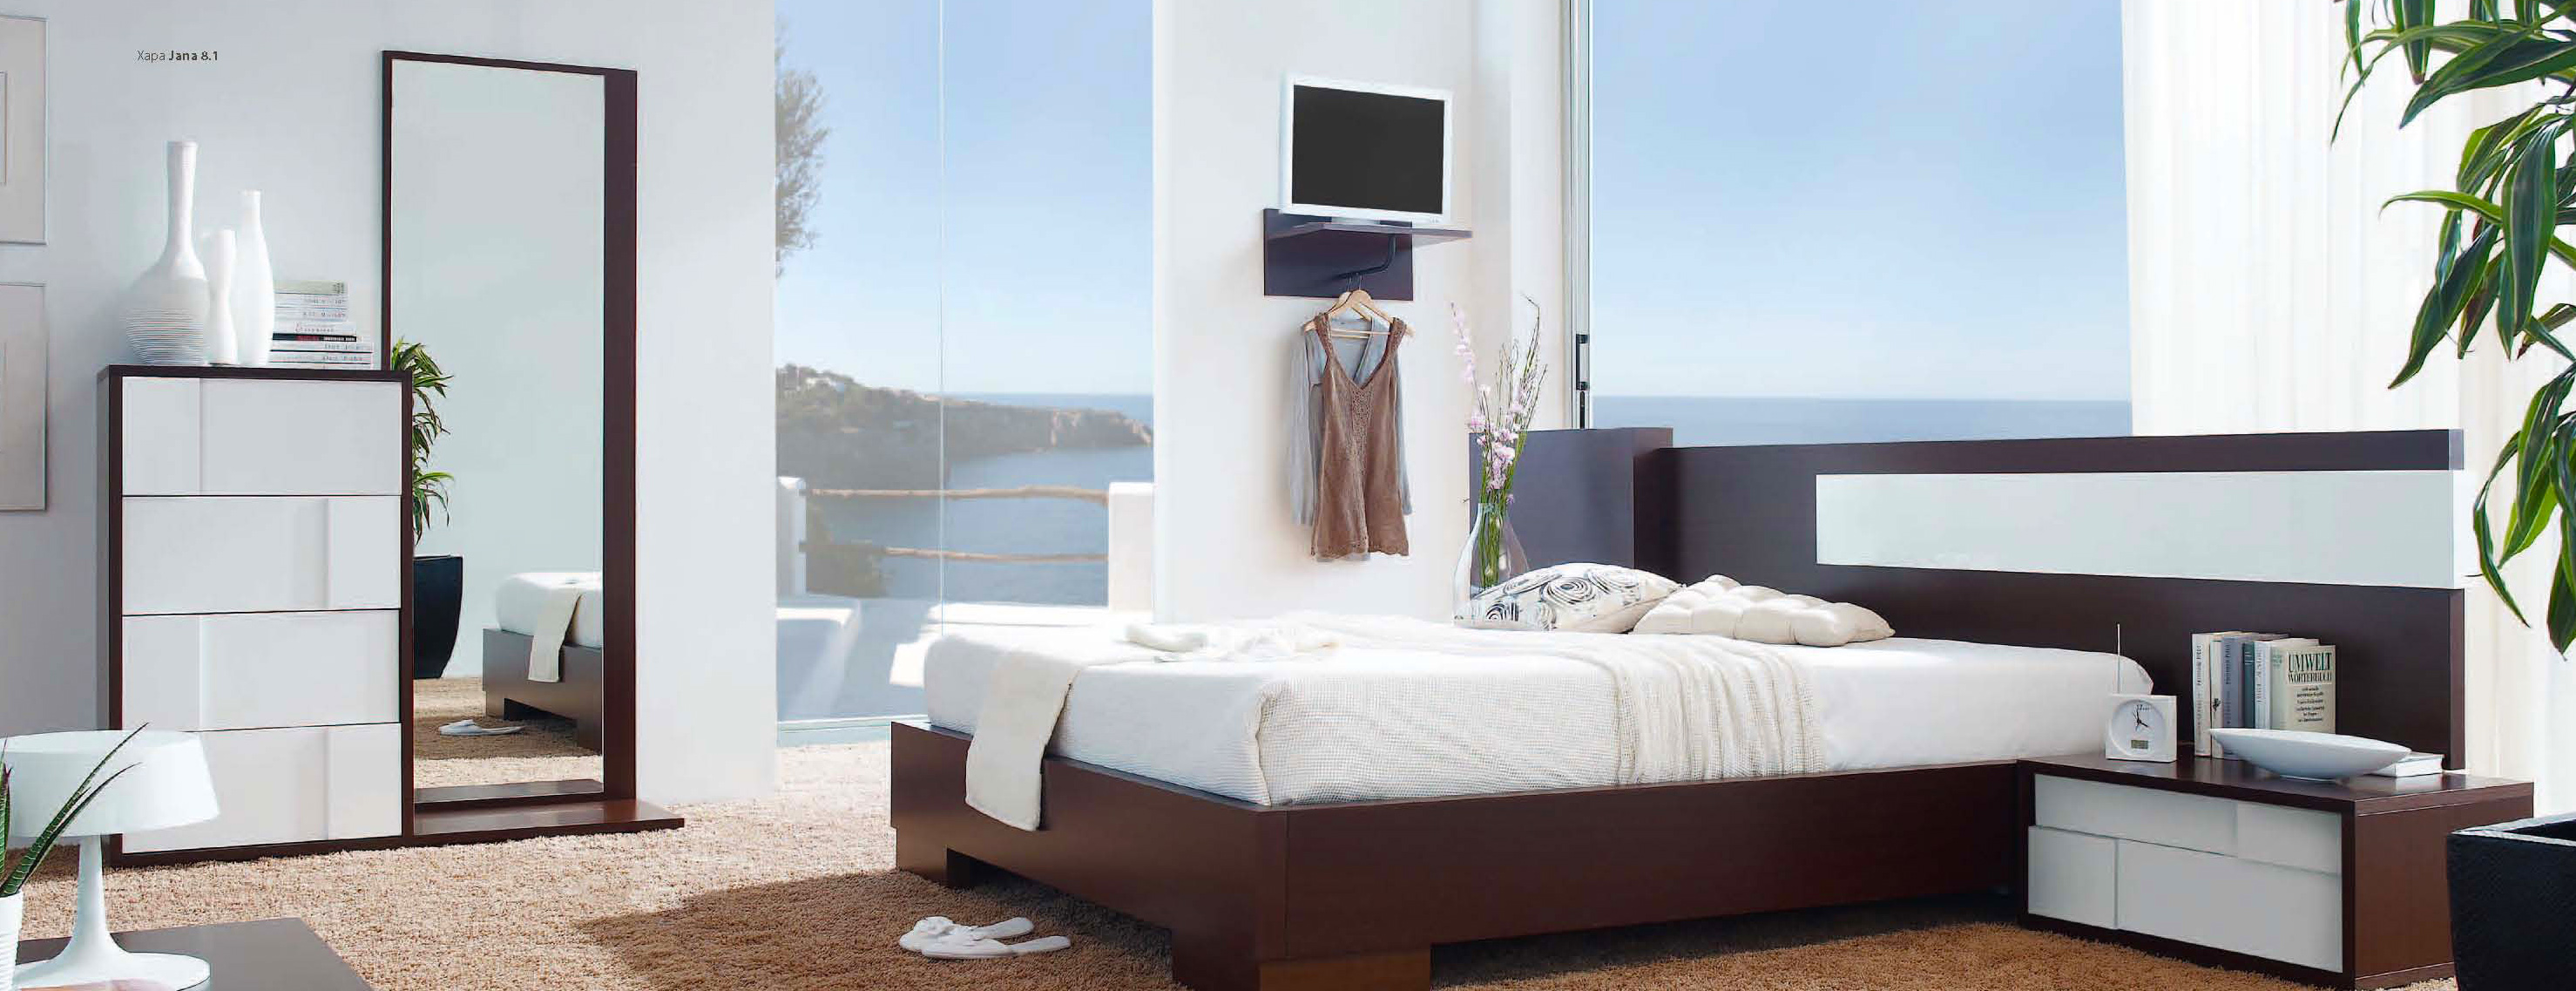 furniture-for-modern-house-contemporary-furniture-design-ideas-with-dark-brown-wooden-bed-frames-and-headboard-also-brown-carpet-flooring